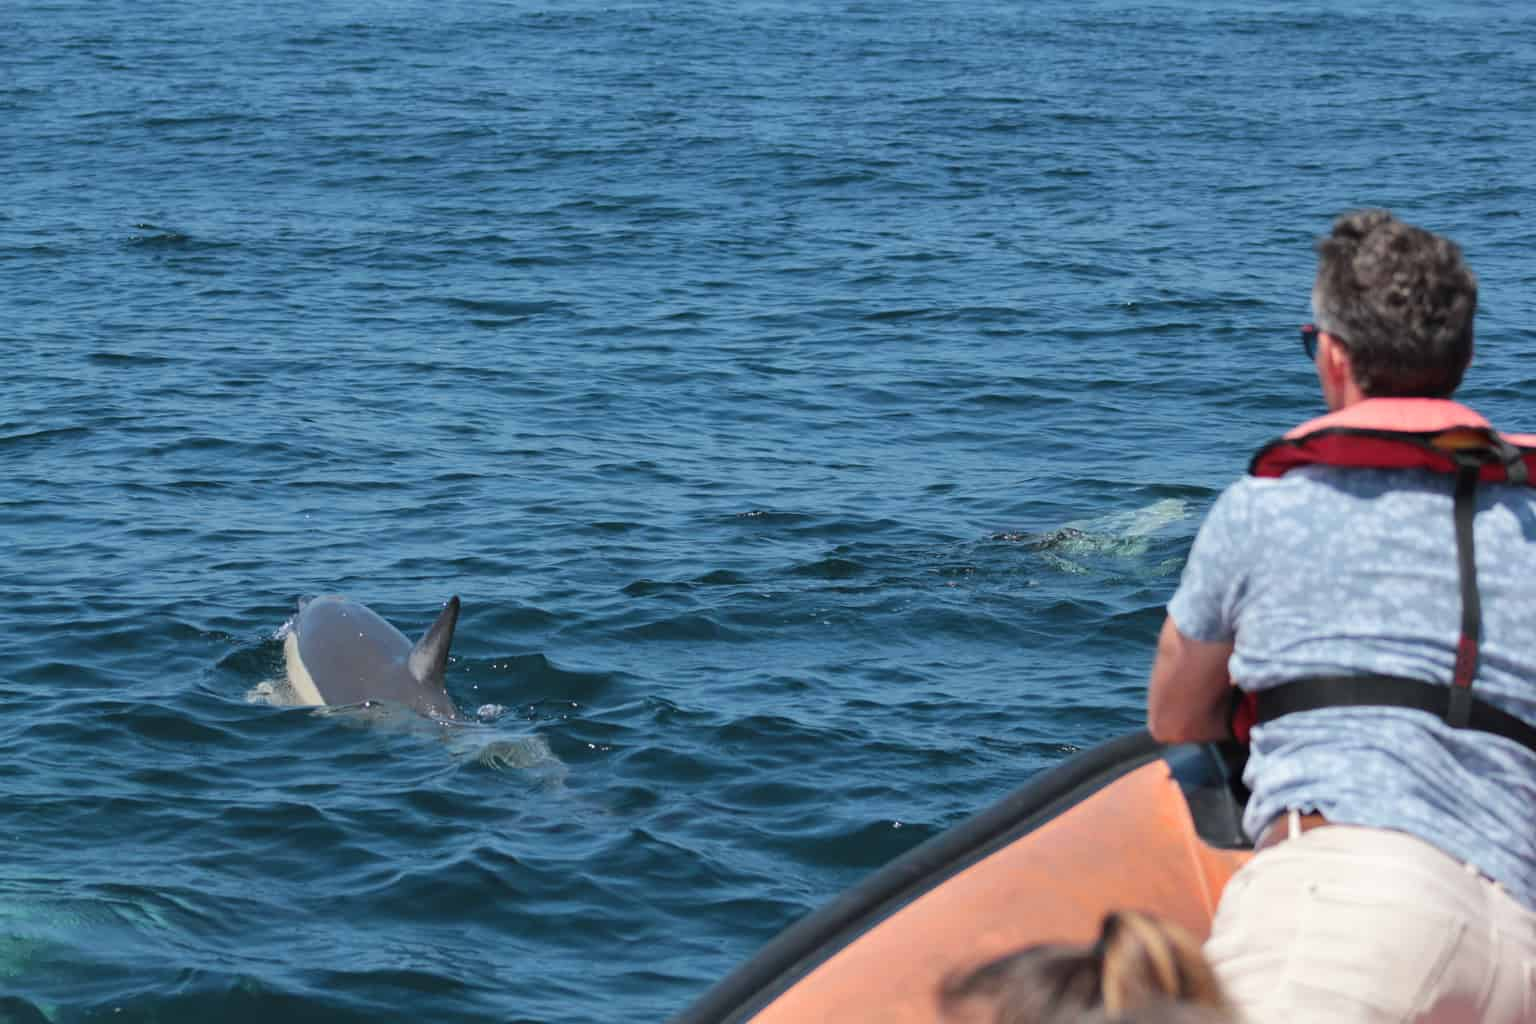 passengers watching dolphins from a RIB boat